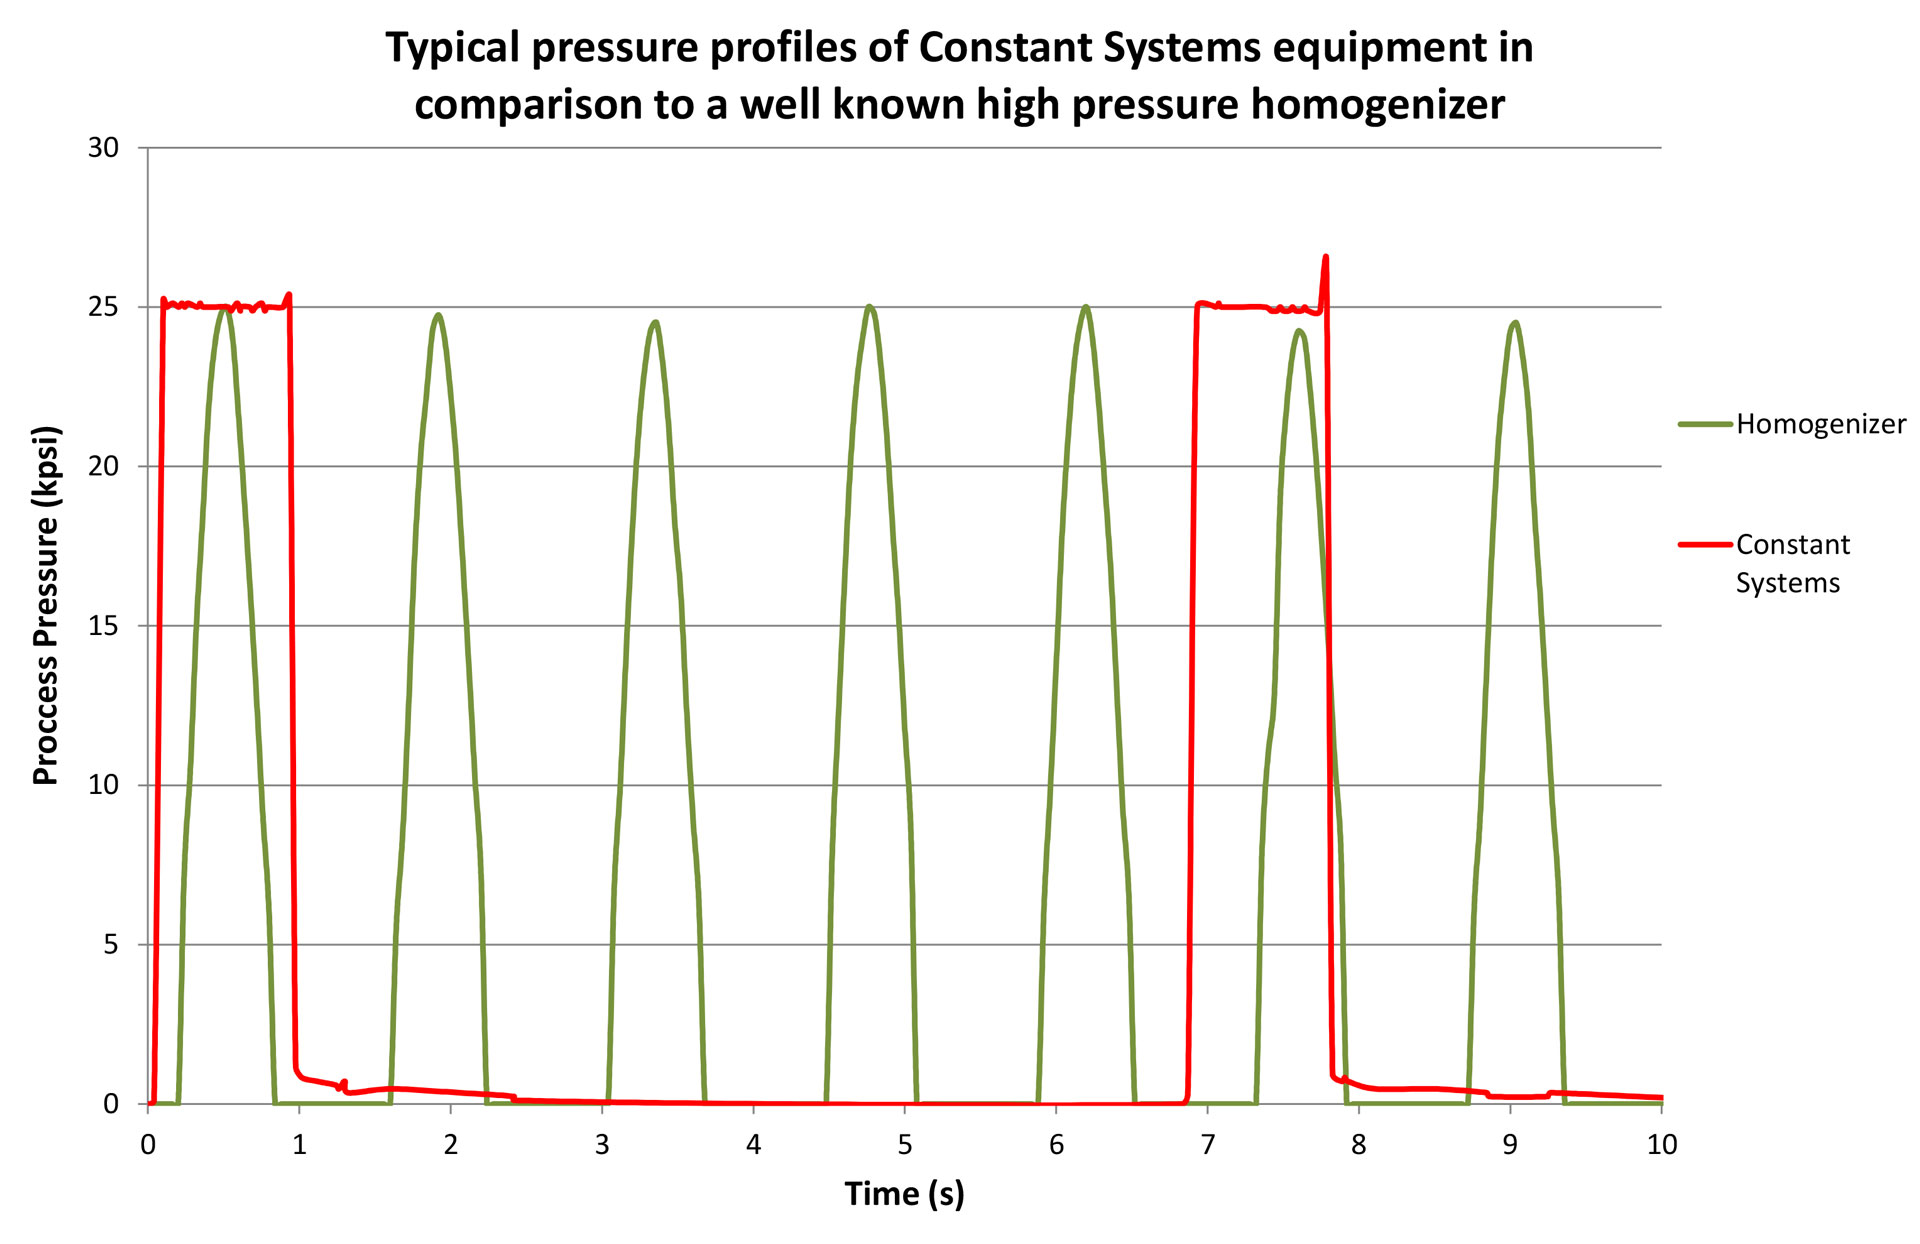 Constant Systems Limited